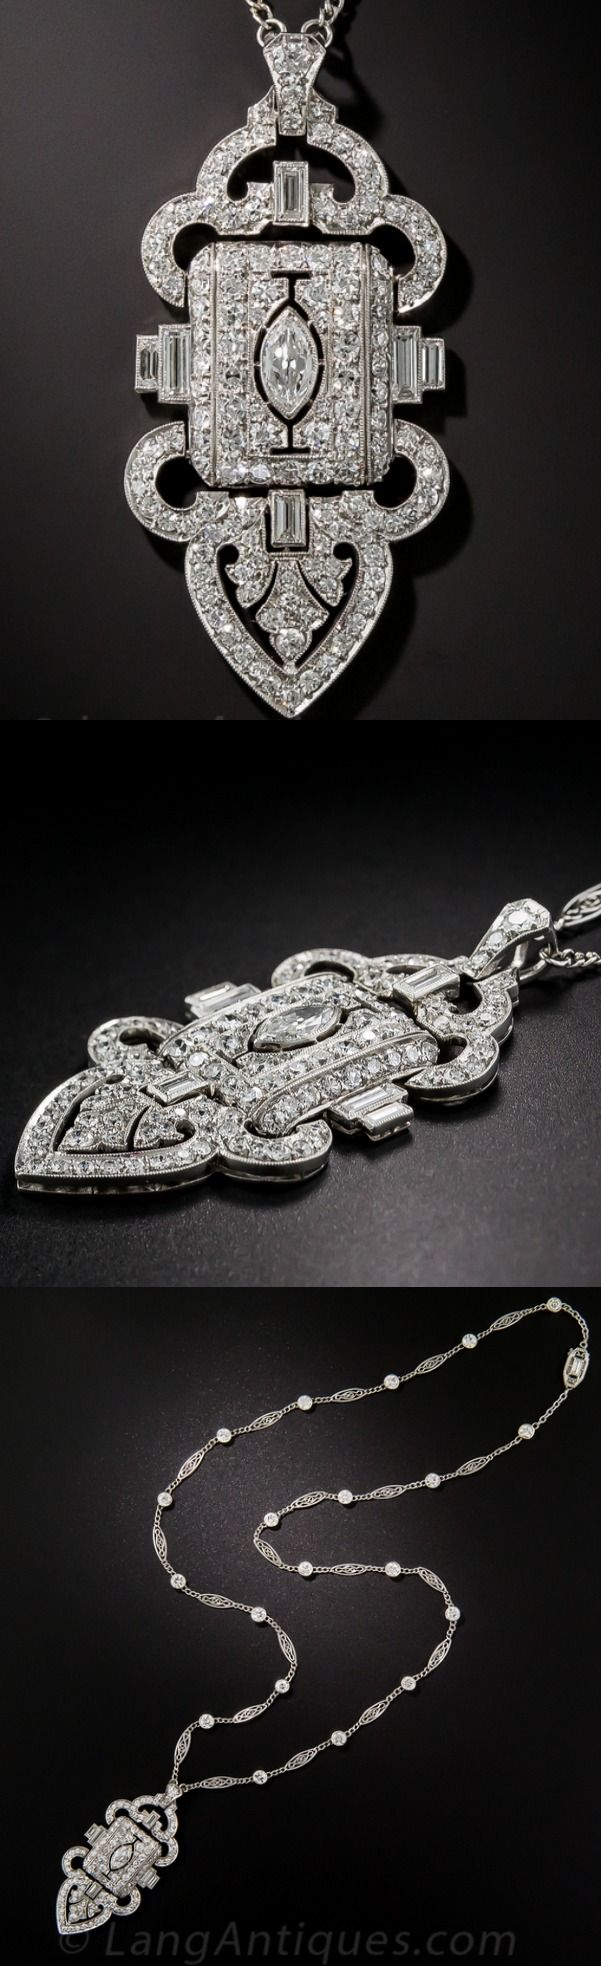 Art Deco Platinum Diamond Lavaliere Necklace, A pristine and precious treasure from the height of the Jazz Age - circa 1920s.